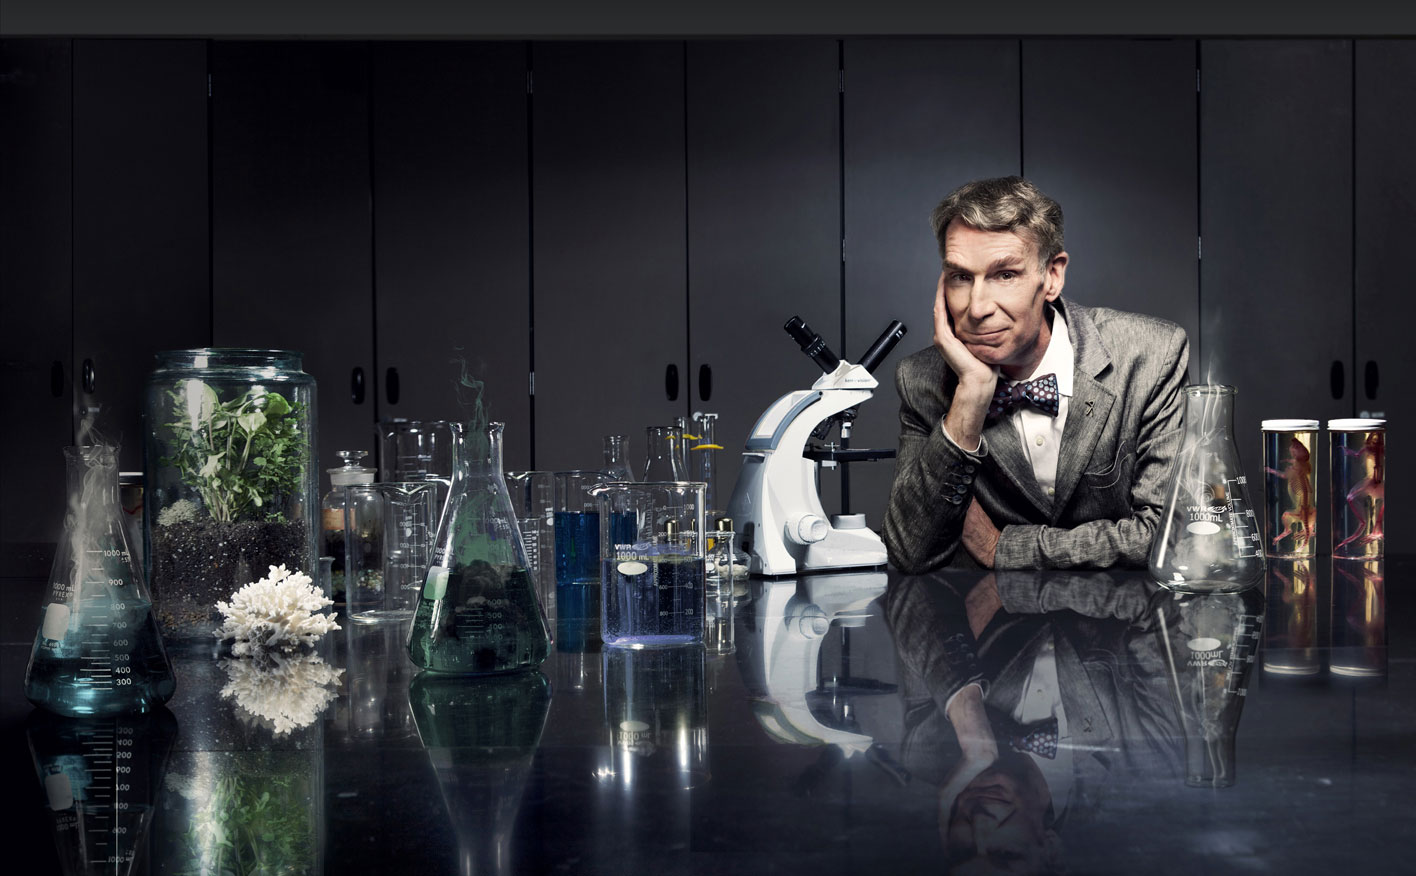 bill-nye-lab-website